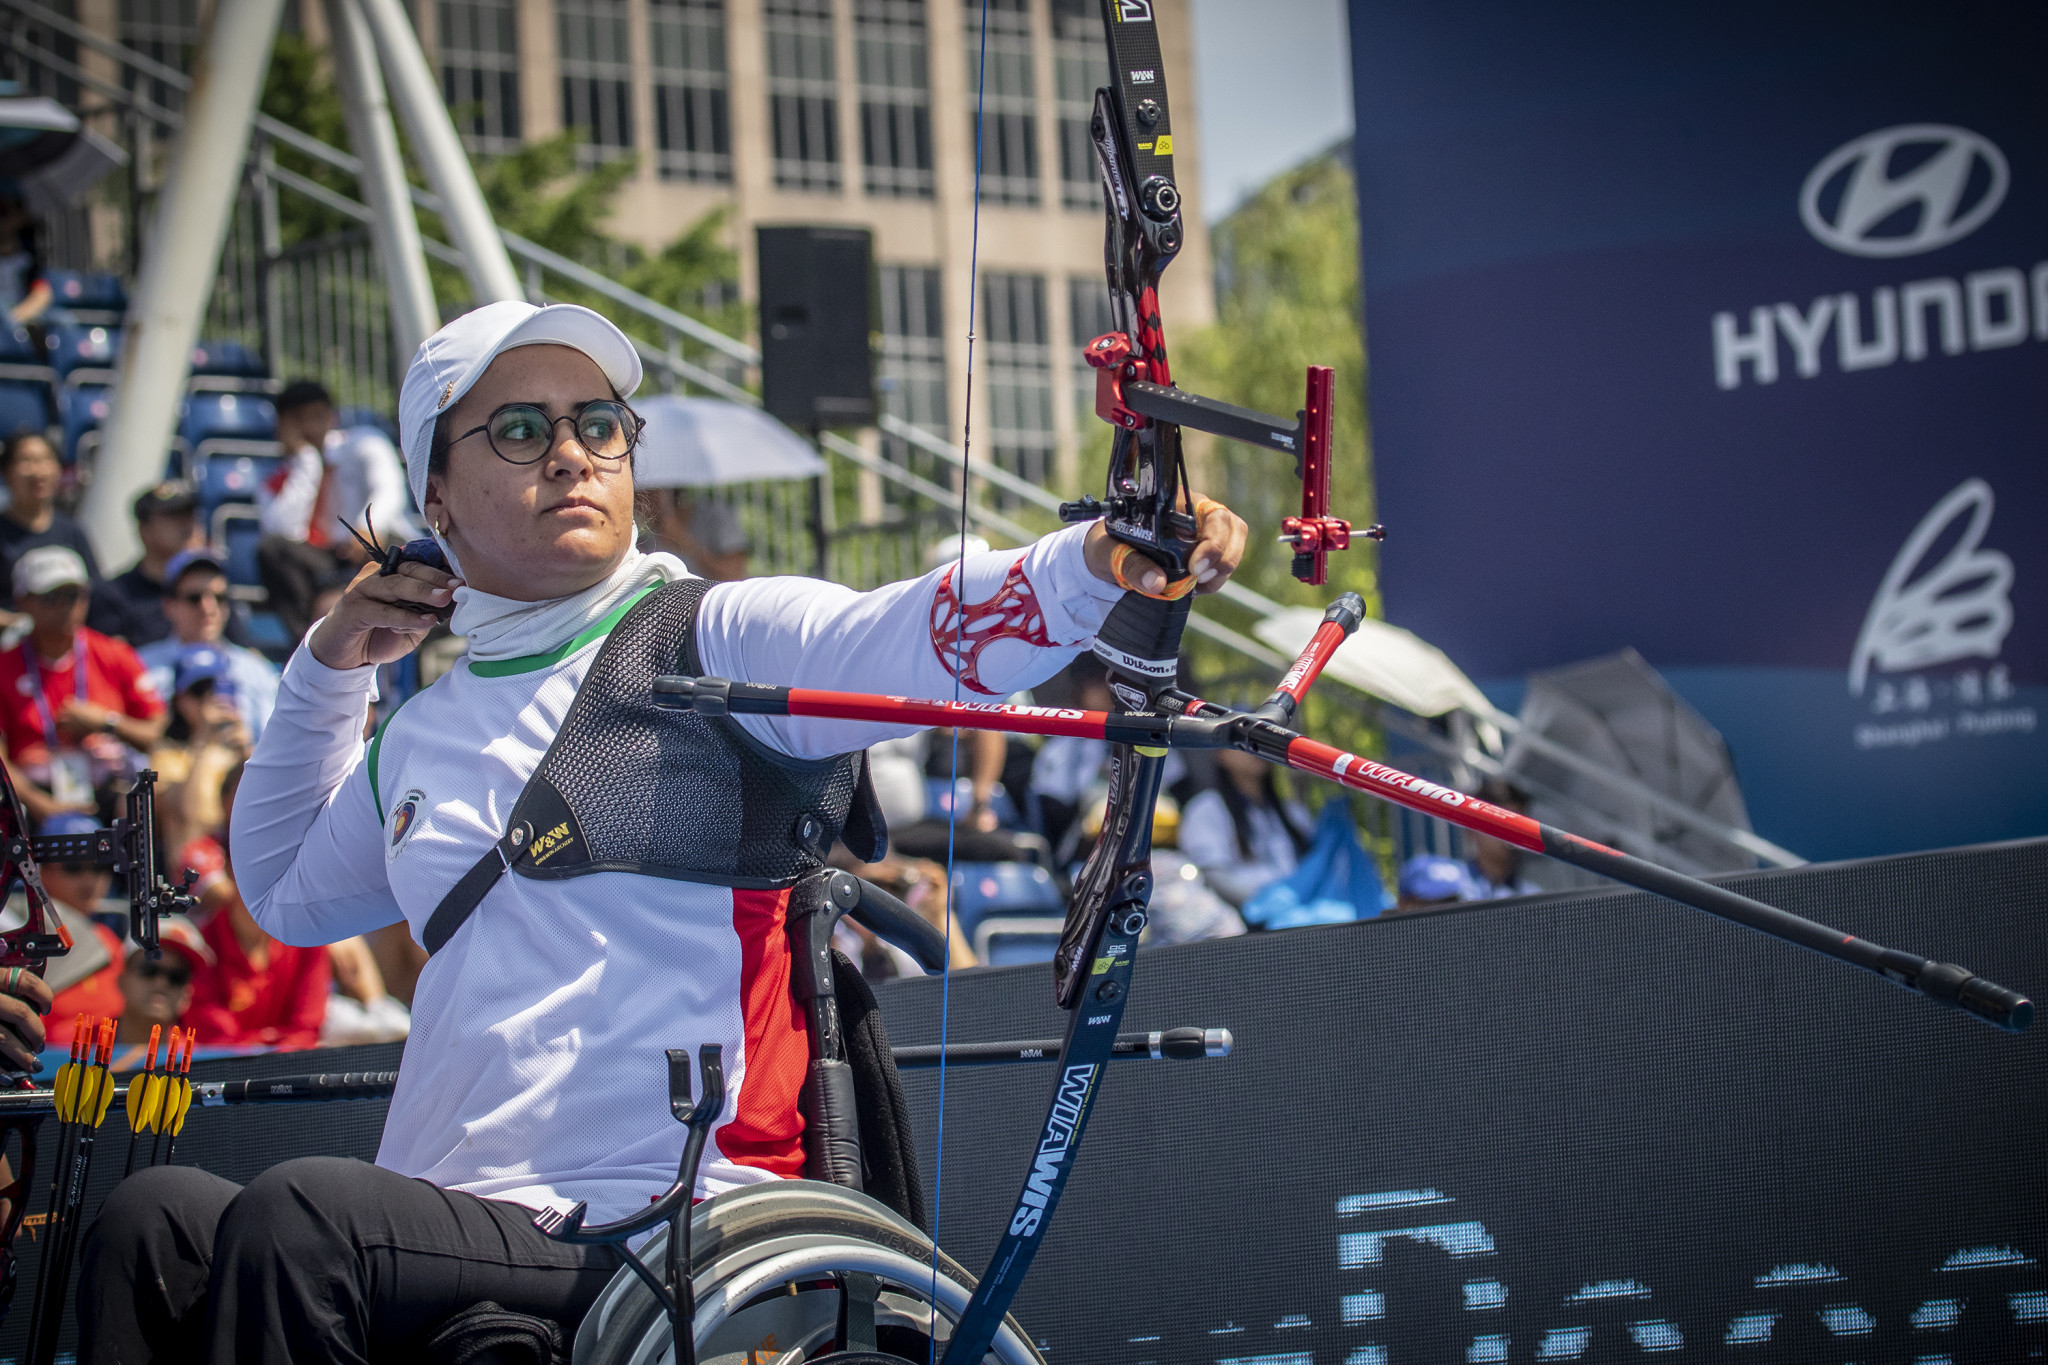 Zahra Nemati of Iran is targeting a third straight gold medal at the Tokyo 2020 Paralympic Games ©Getty Images